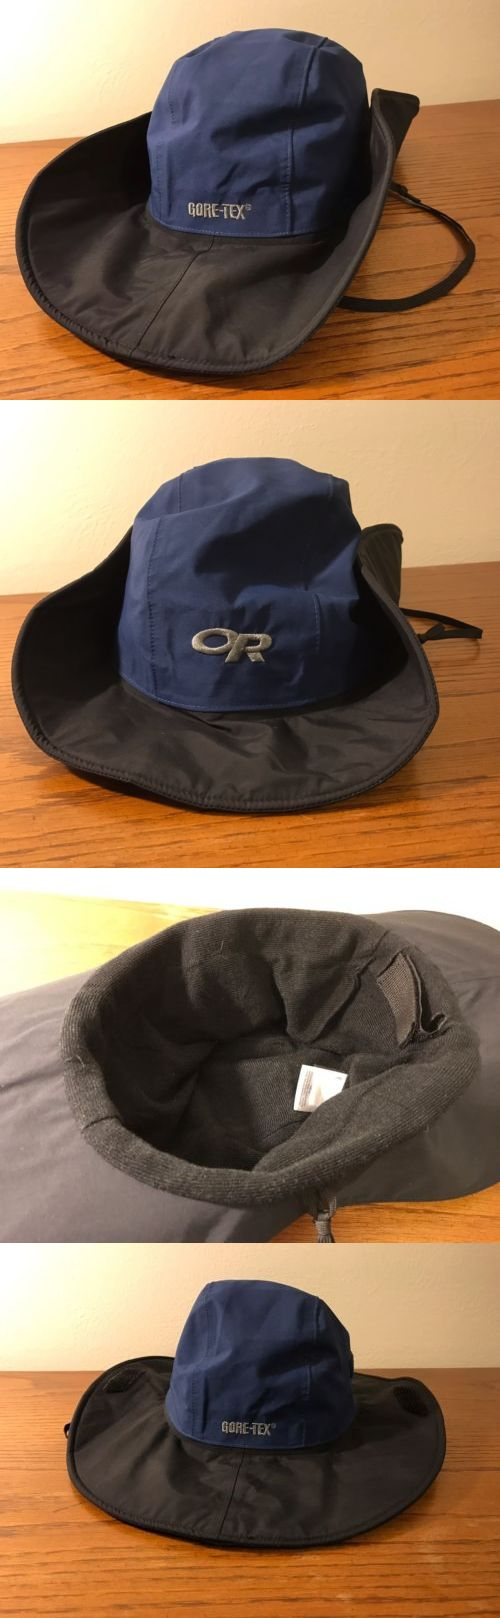 Hats and Headwear 159094: Or Outdoor Research Gore-Tex Seattle Sombrero Waterproof Hat - Xl - Navy/Black BUY IT NOW ONLY: $34.99